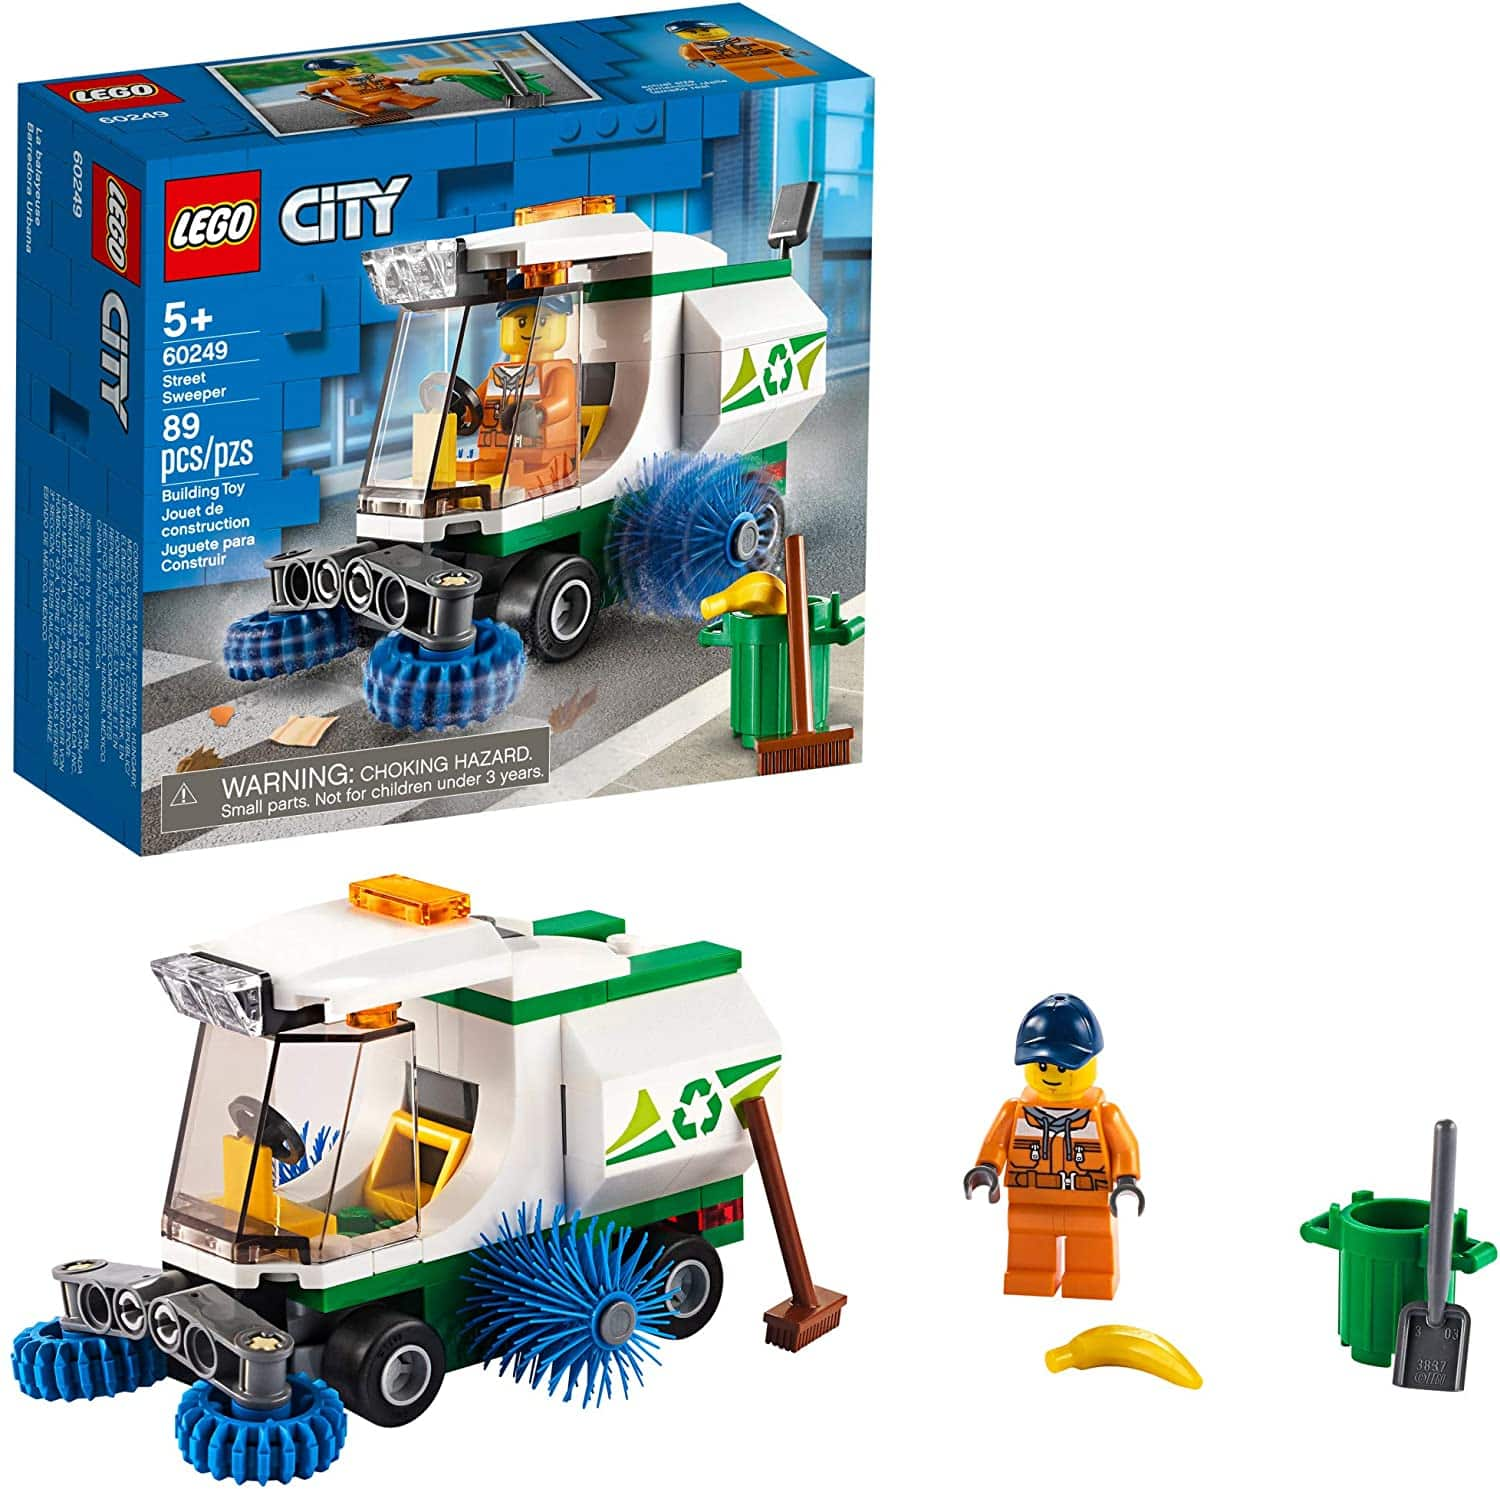 LEGO City Street Sweeper Construction Building Set